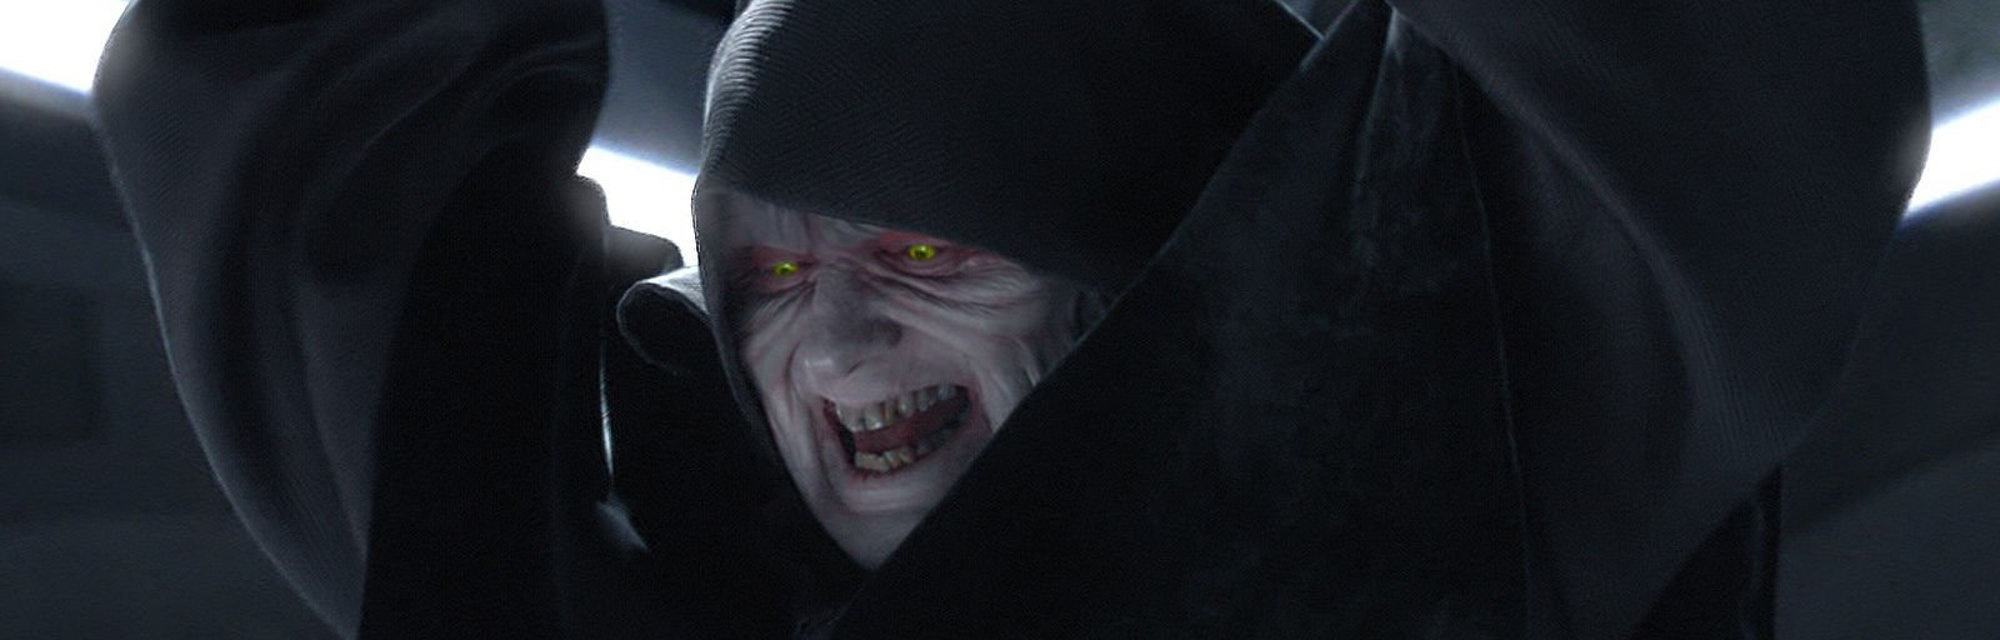 Star Wars 9 Spoilers Wild Theory Predicts Palpatine S Return And Death